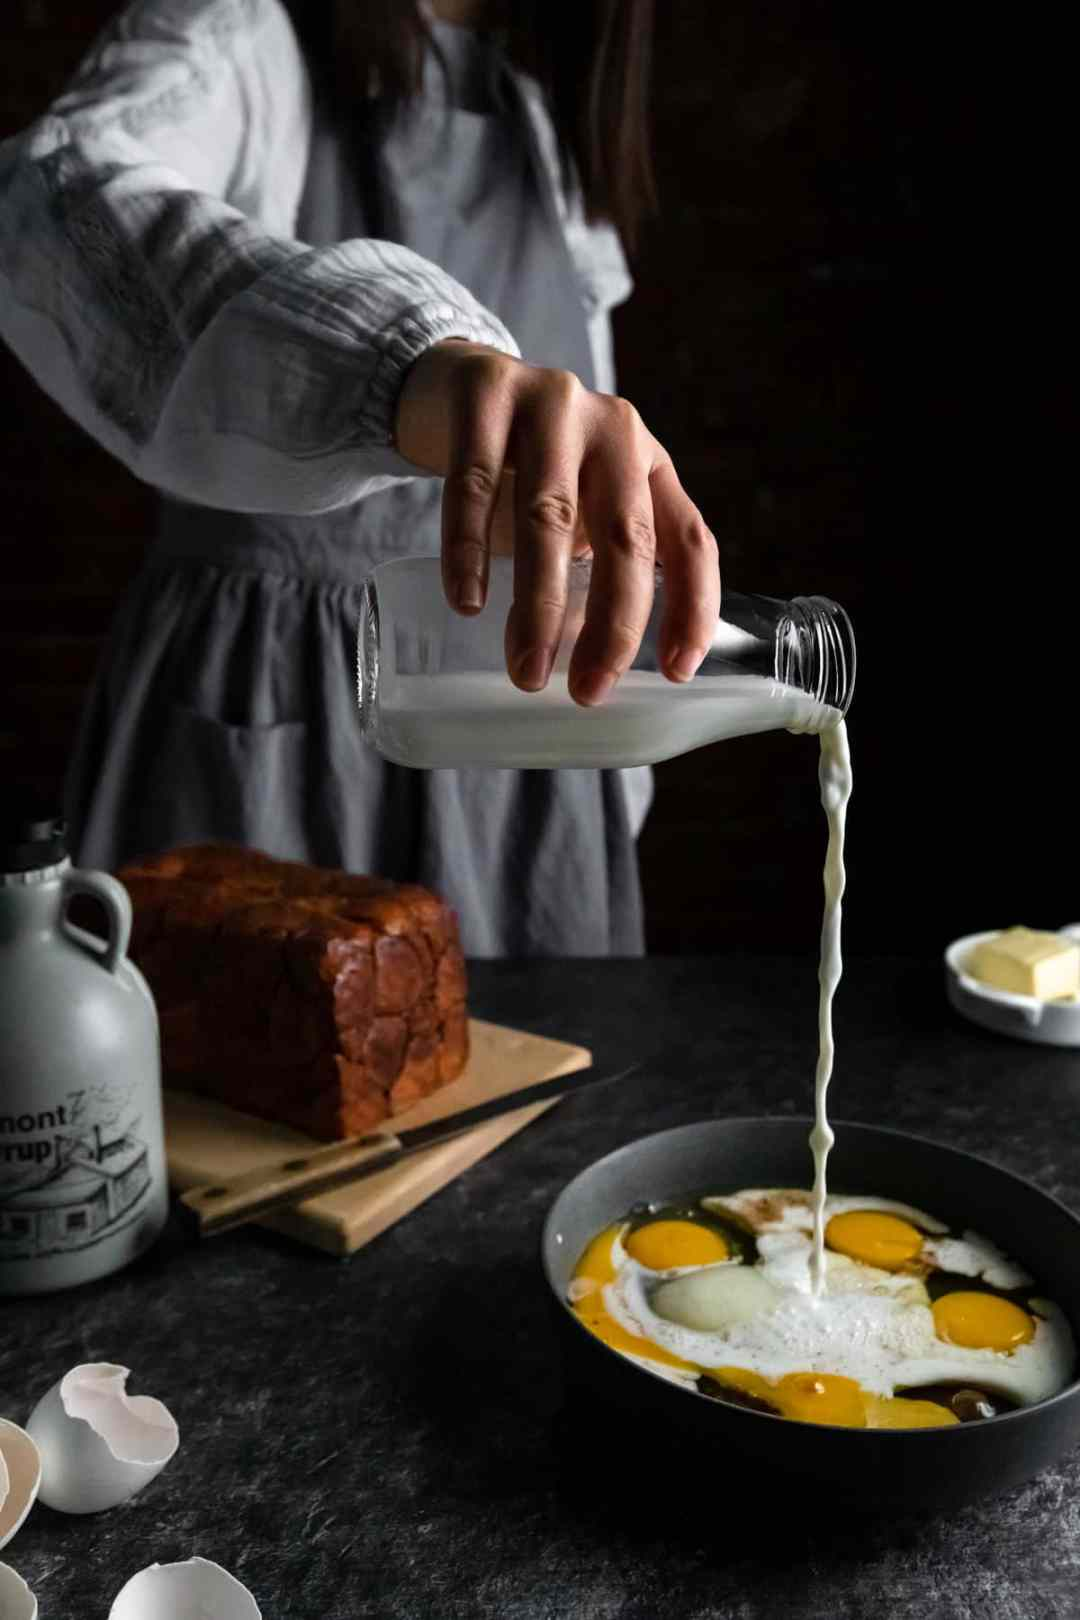 Pouring the milk to make the French Toast Batter